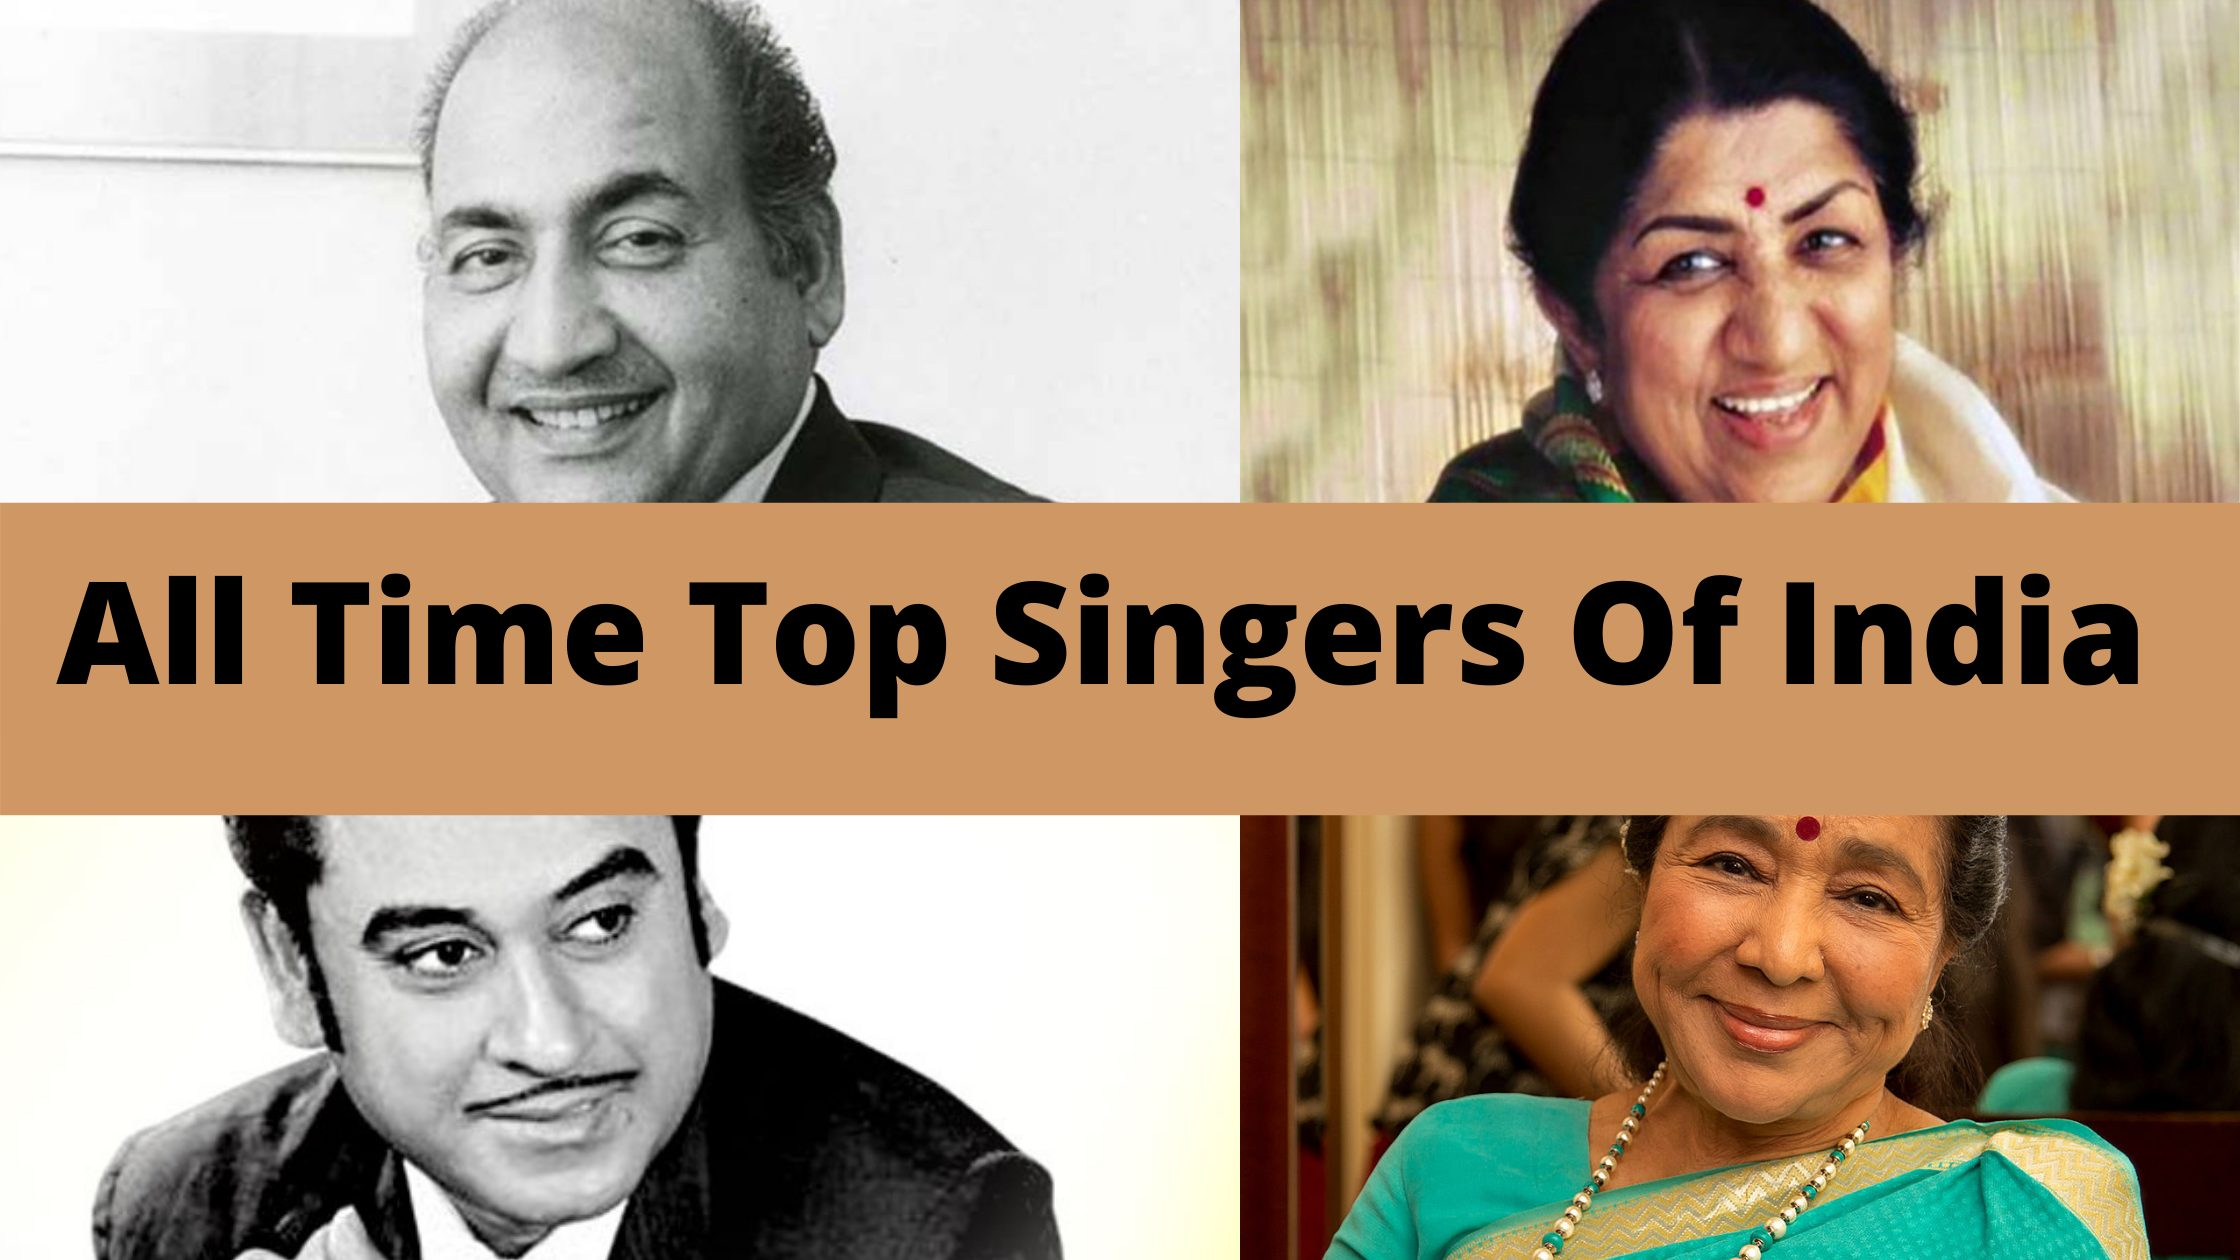 All Time Top Singers Of India